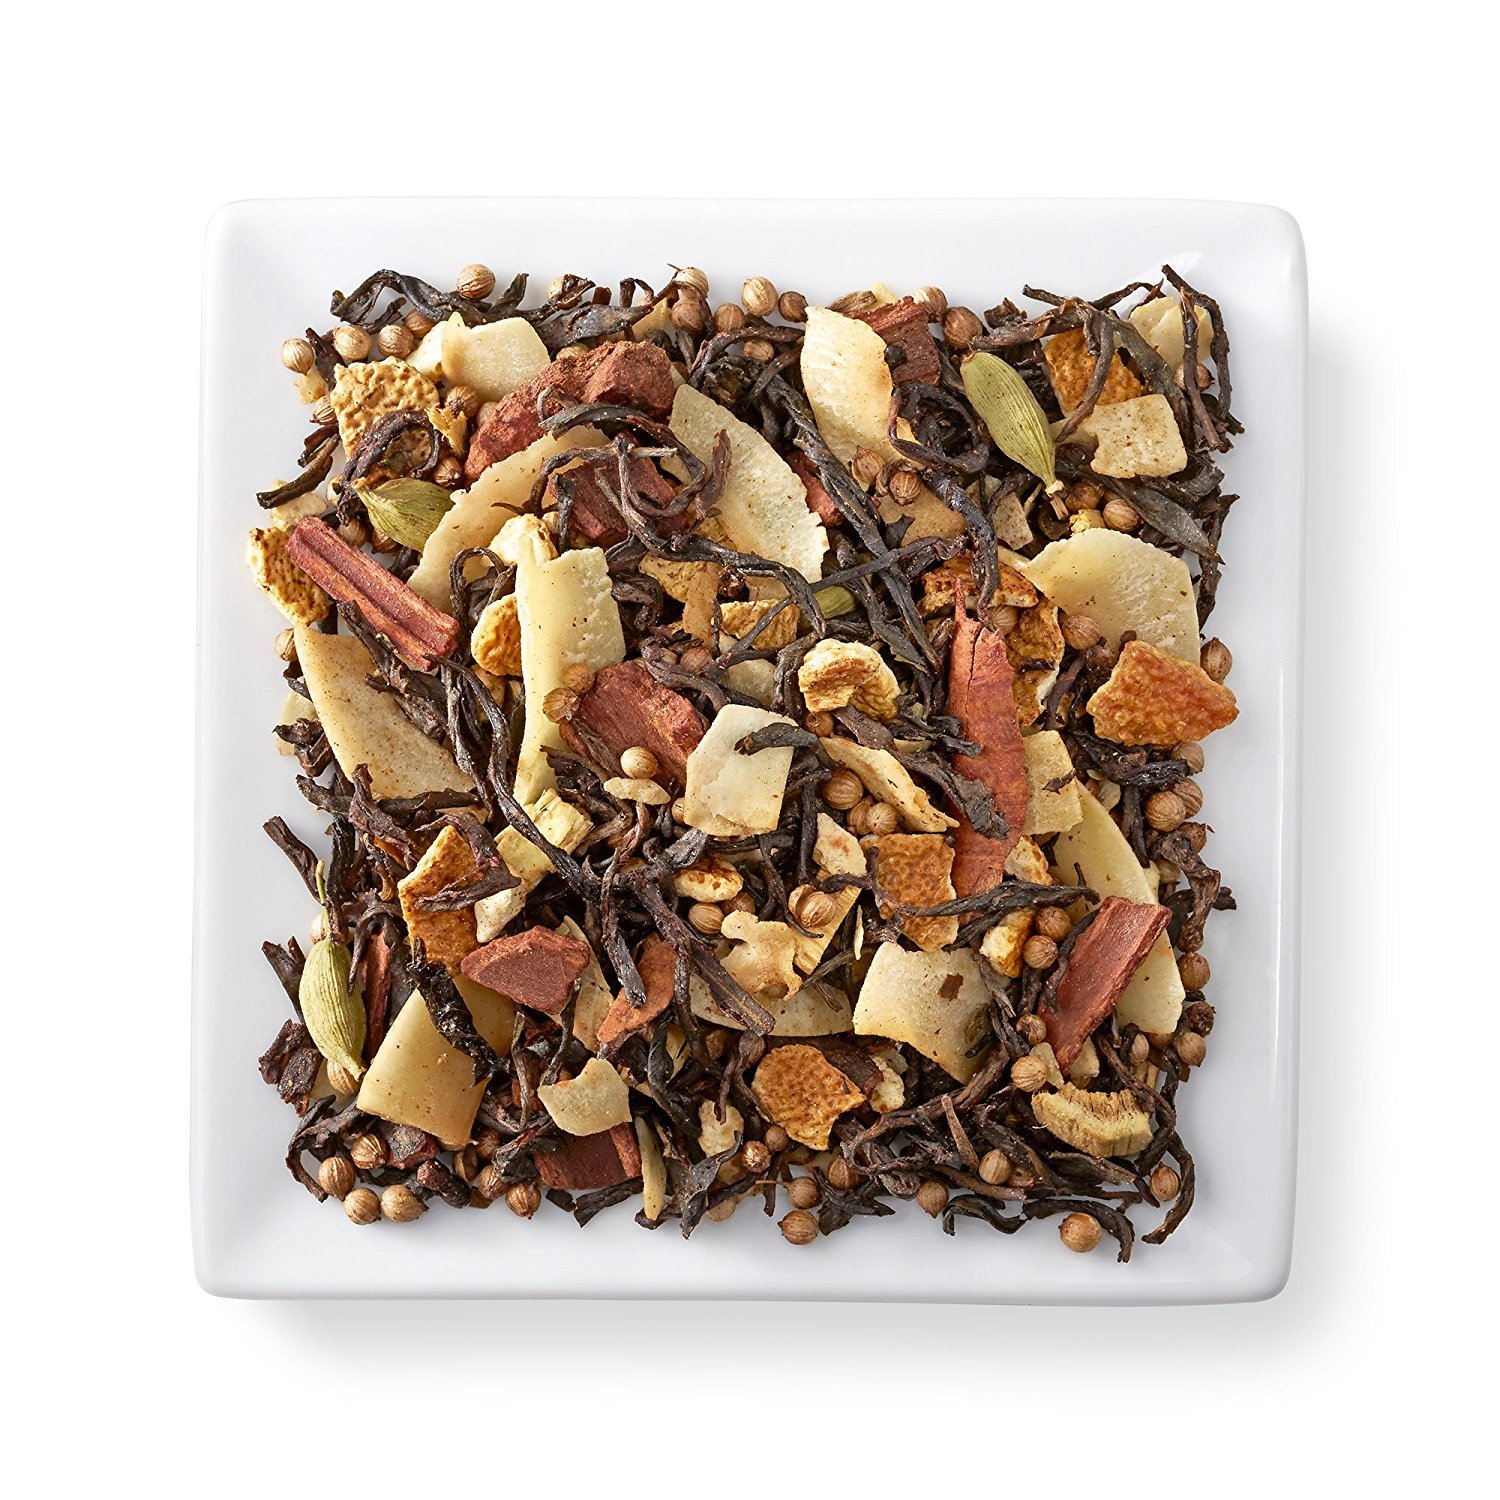 Spice of Life White Tea by Teavana (4oz Bag) by Teavana